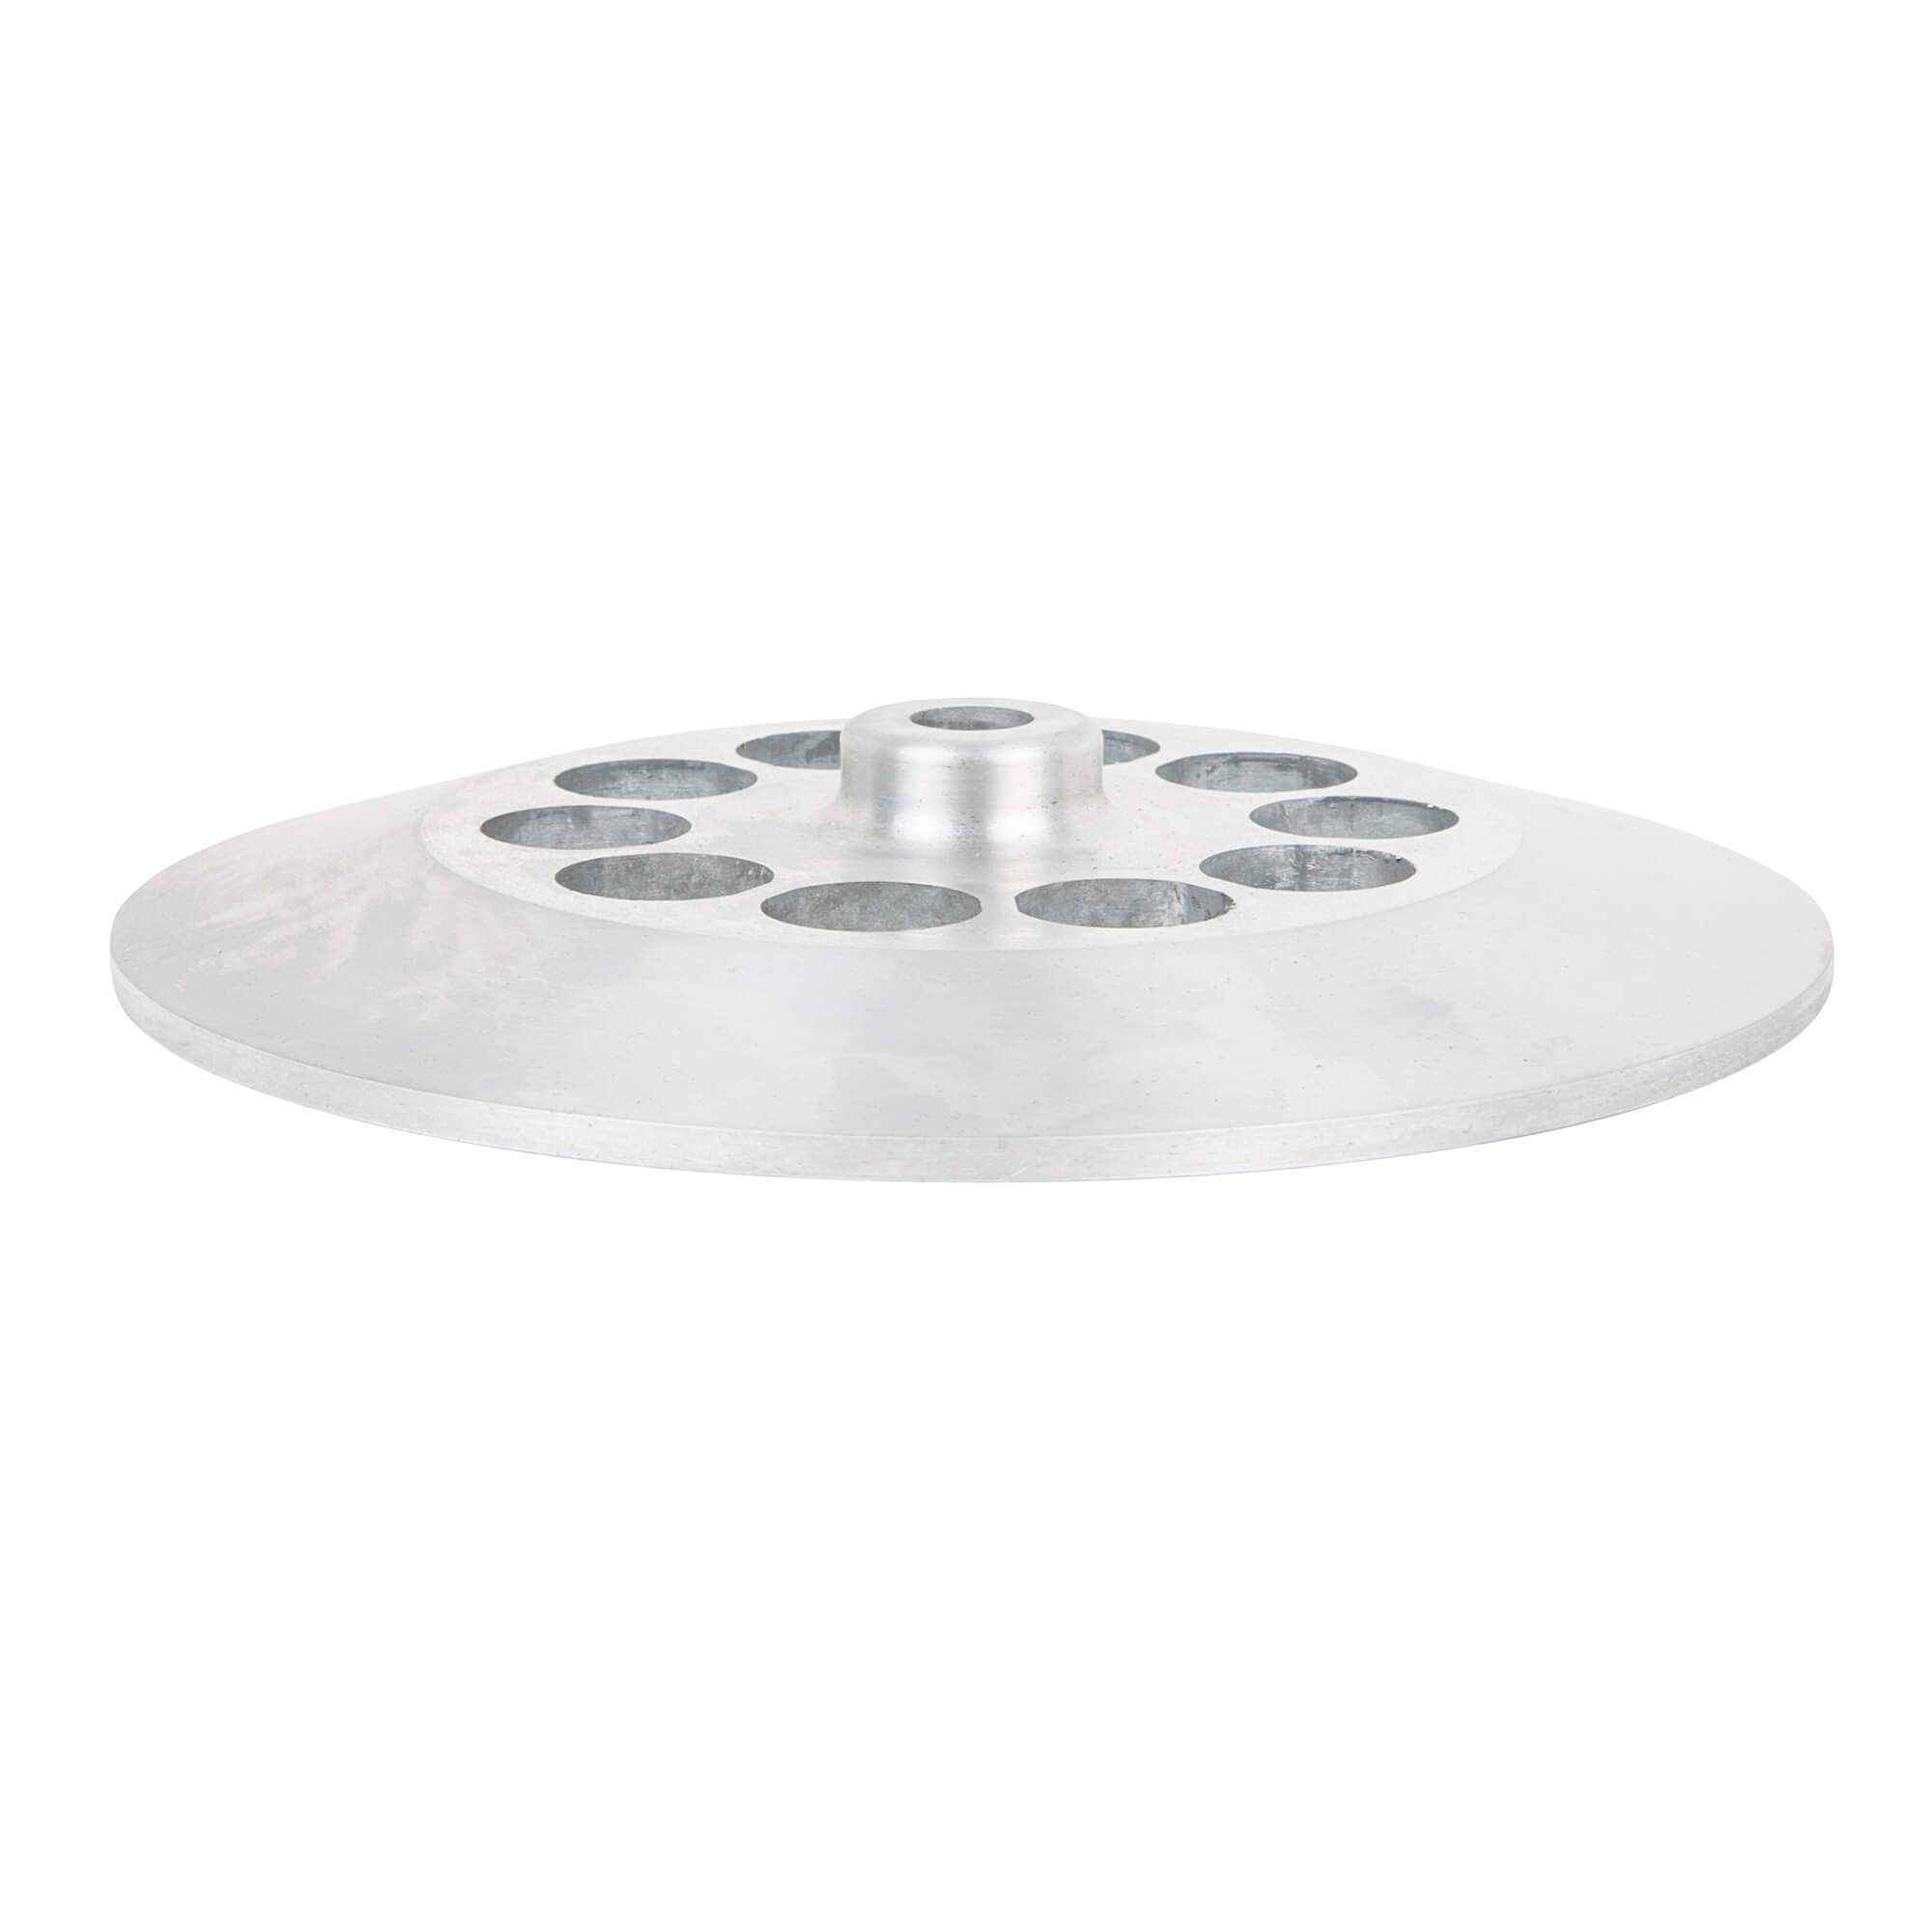 Clutch Pressure Plate for Harley Davidson by V-Twin